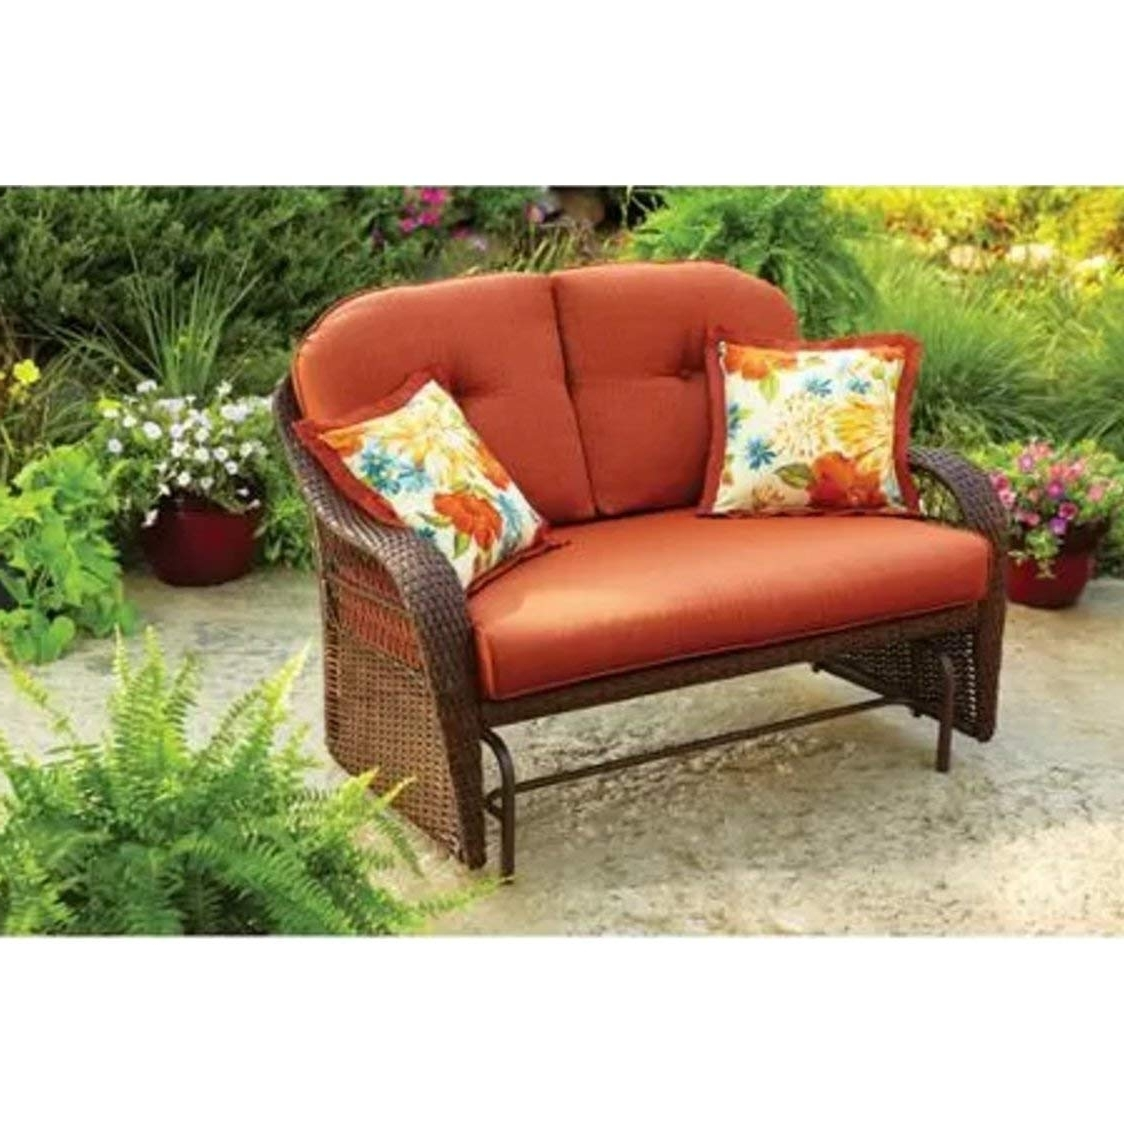 2019 Patio Conversation Sets With Glider Inside Outdoor Patio Glider Better Homes And Gardens Garden Furniture (View 2 of 20)